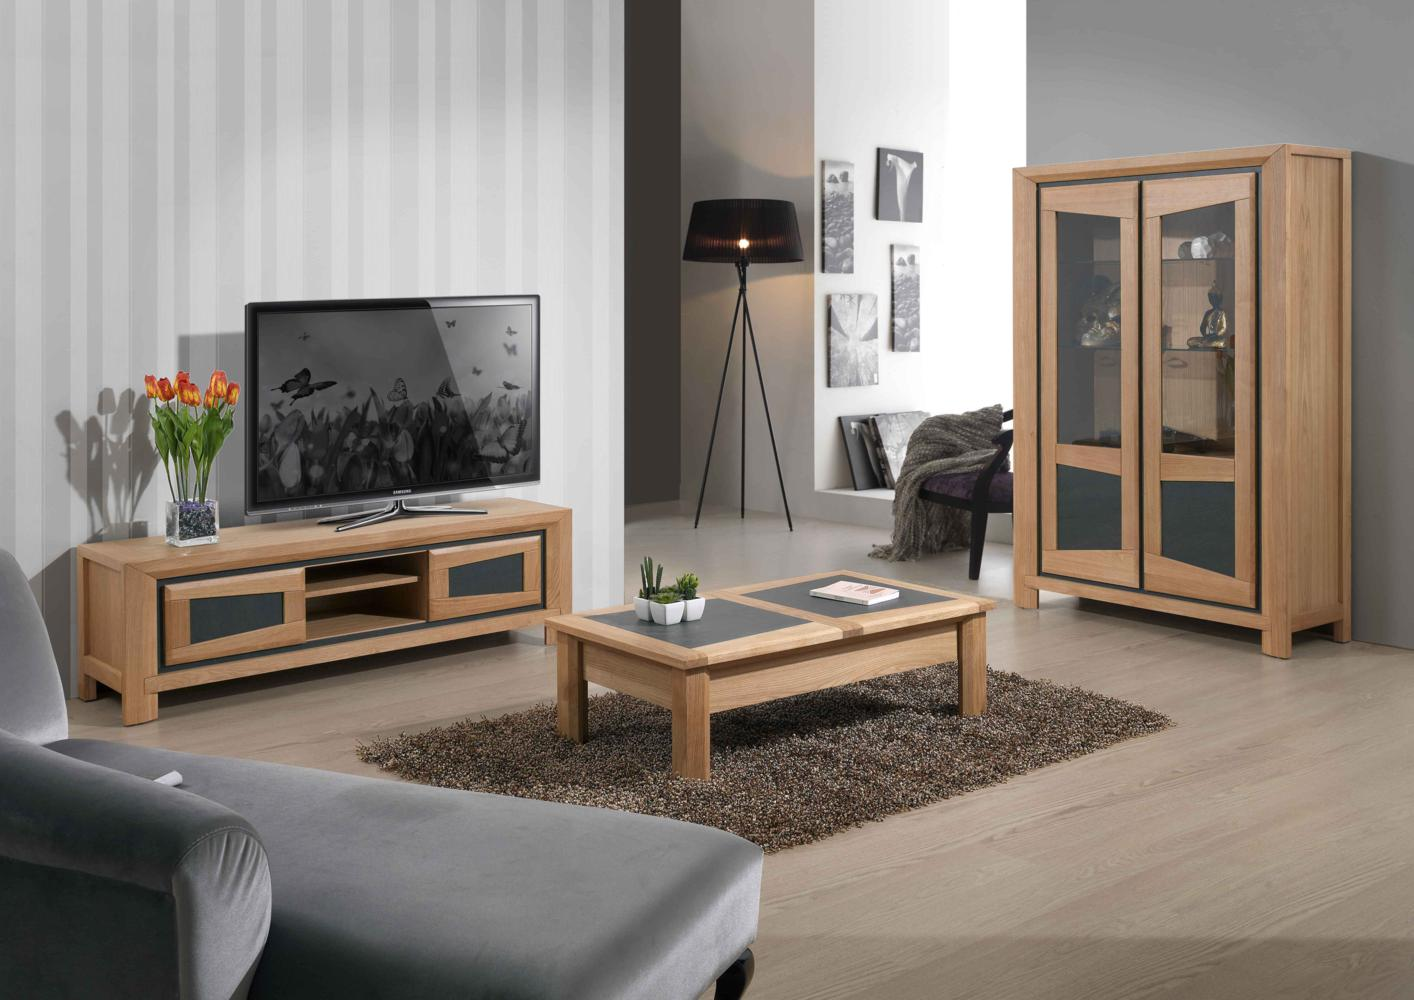 ensemble table basse meuble tv bois massif. Black Bedroom Furniture Sets. Home Design Ideas